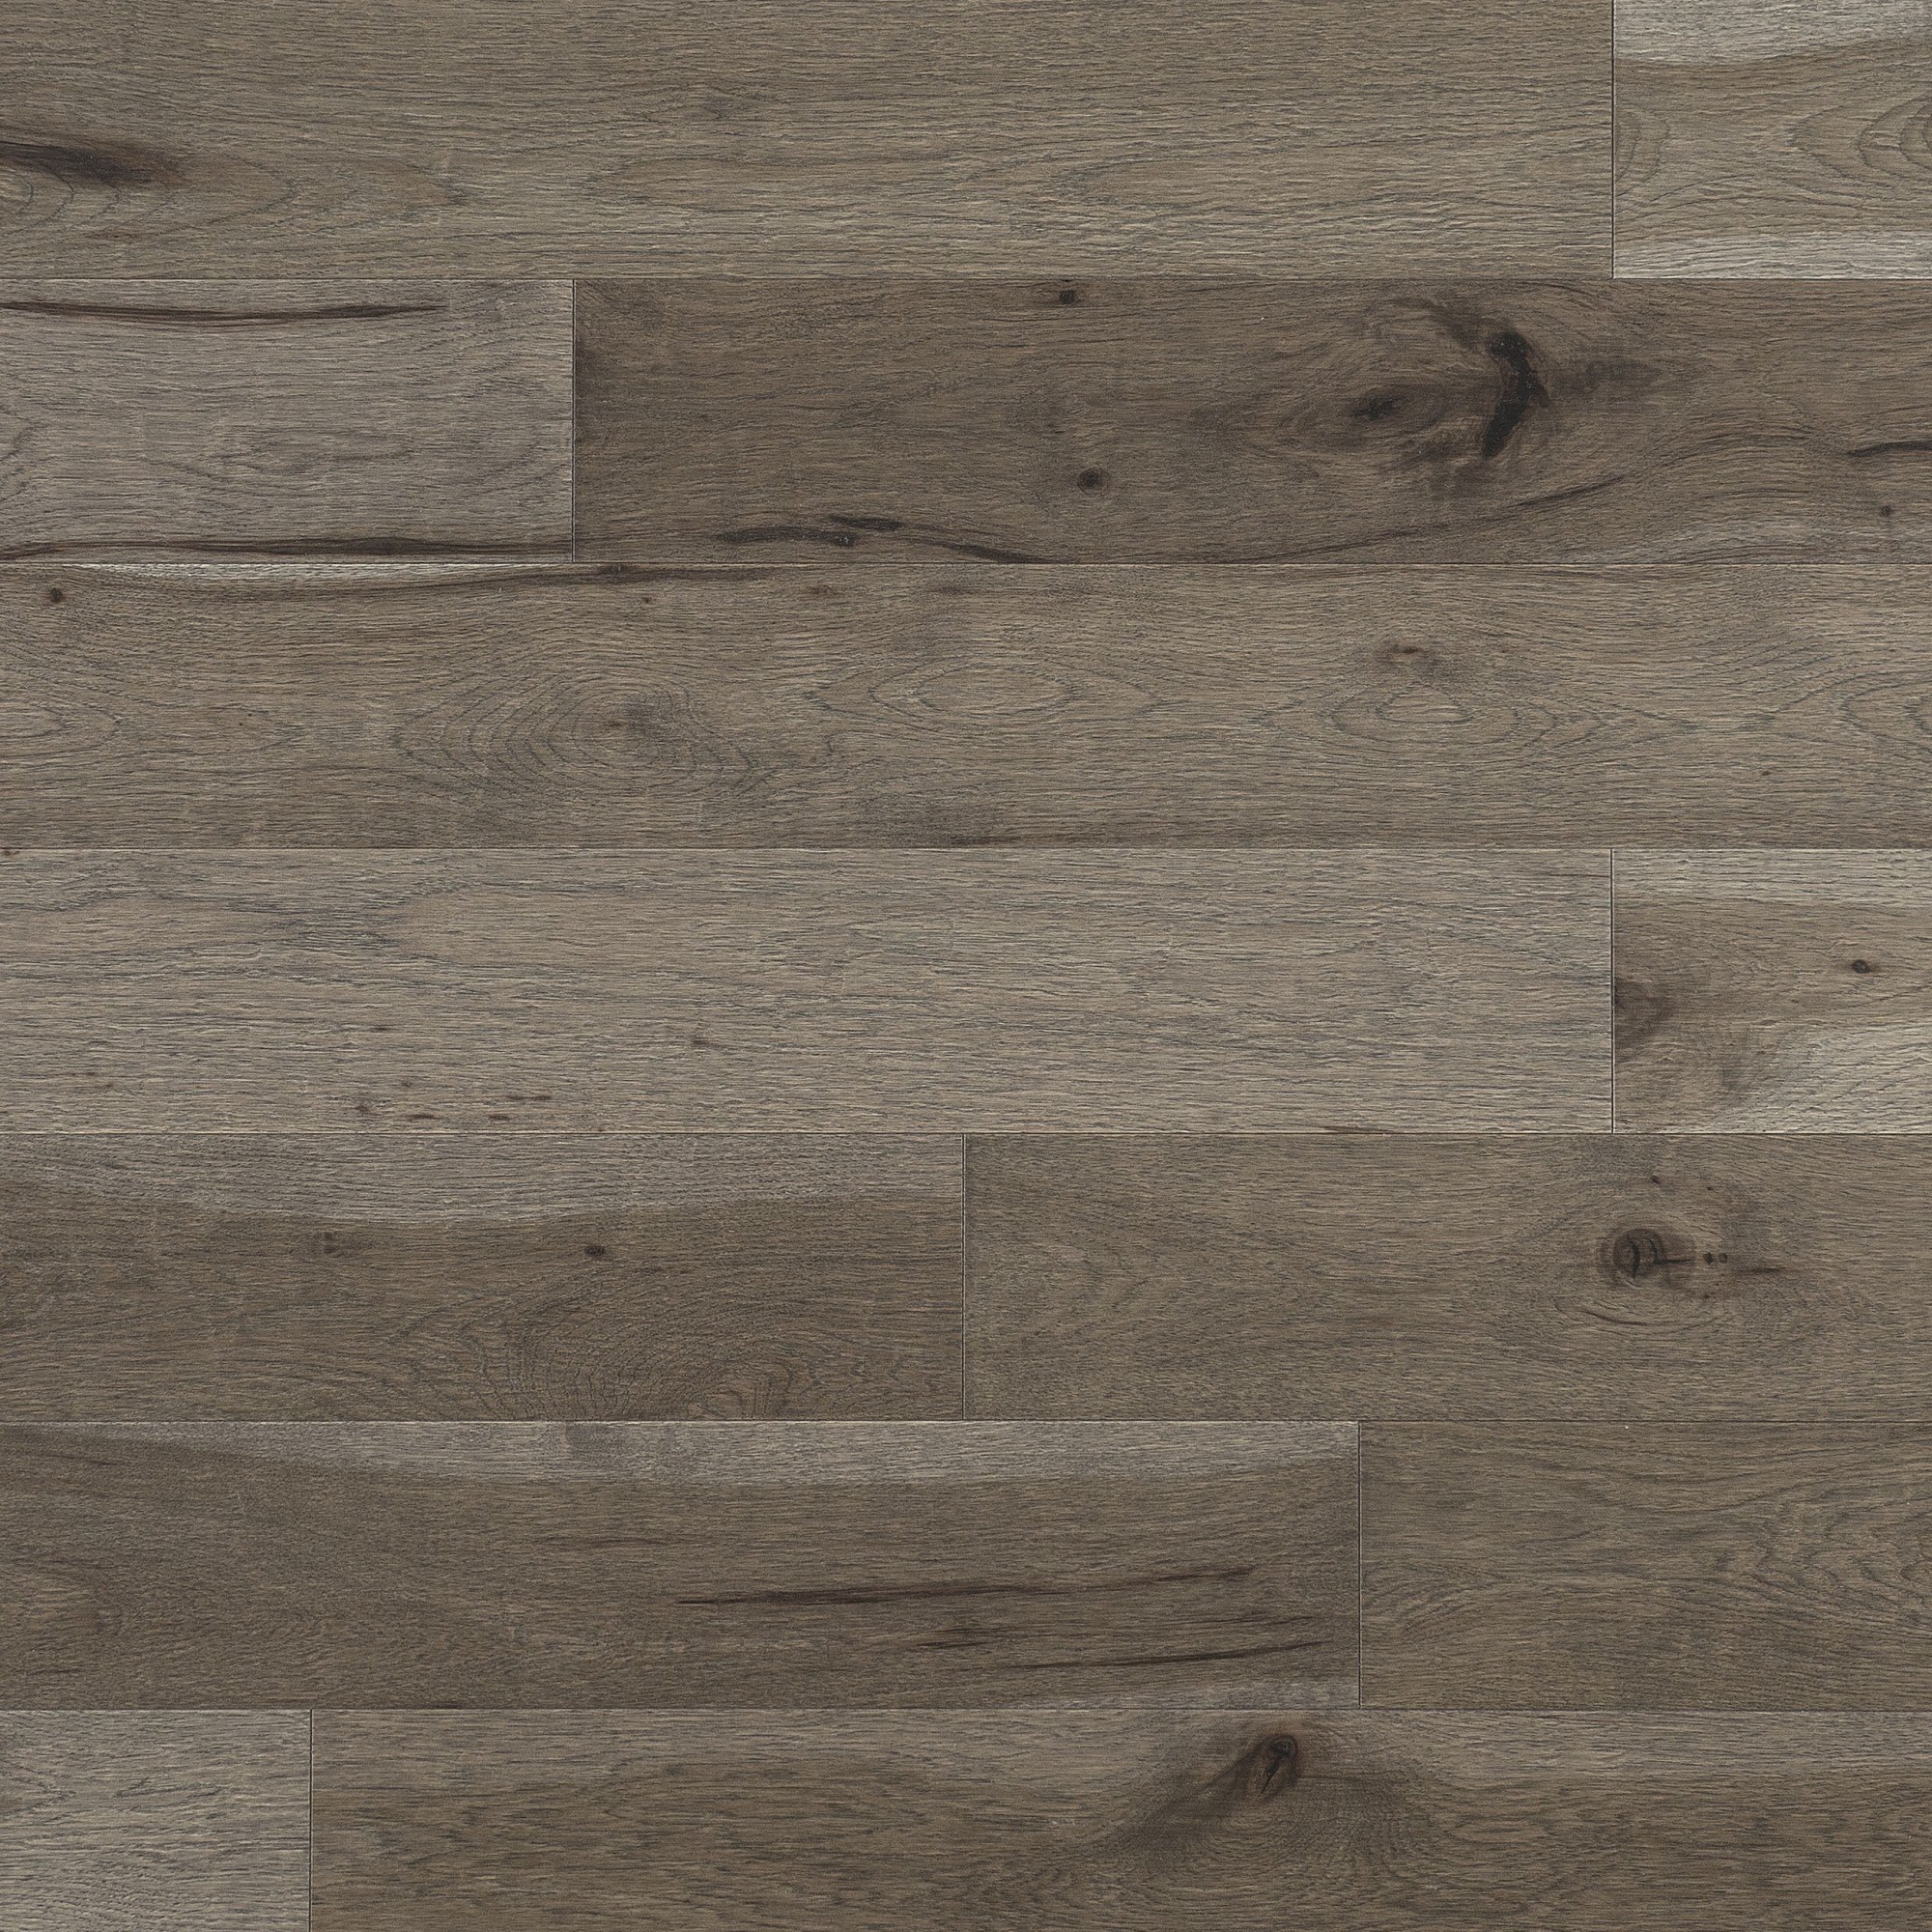 Imagine Hickory Barn Wood Character Mirage Hardwood Floors